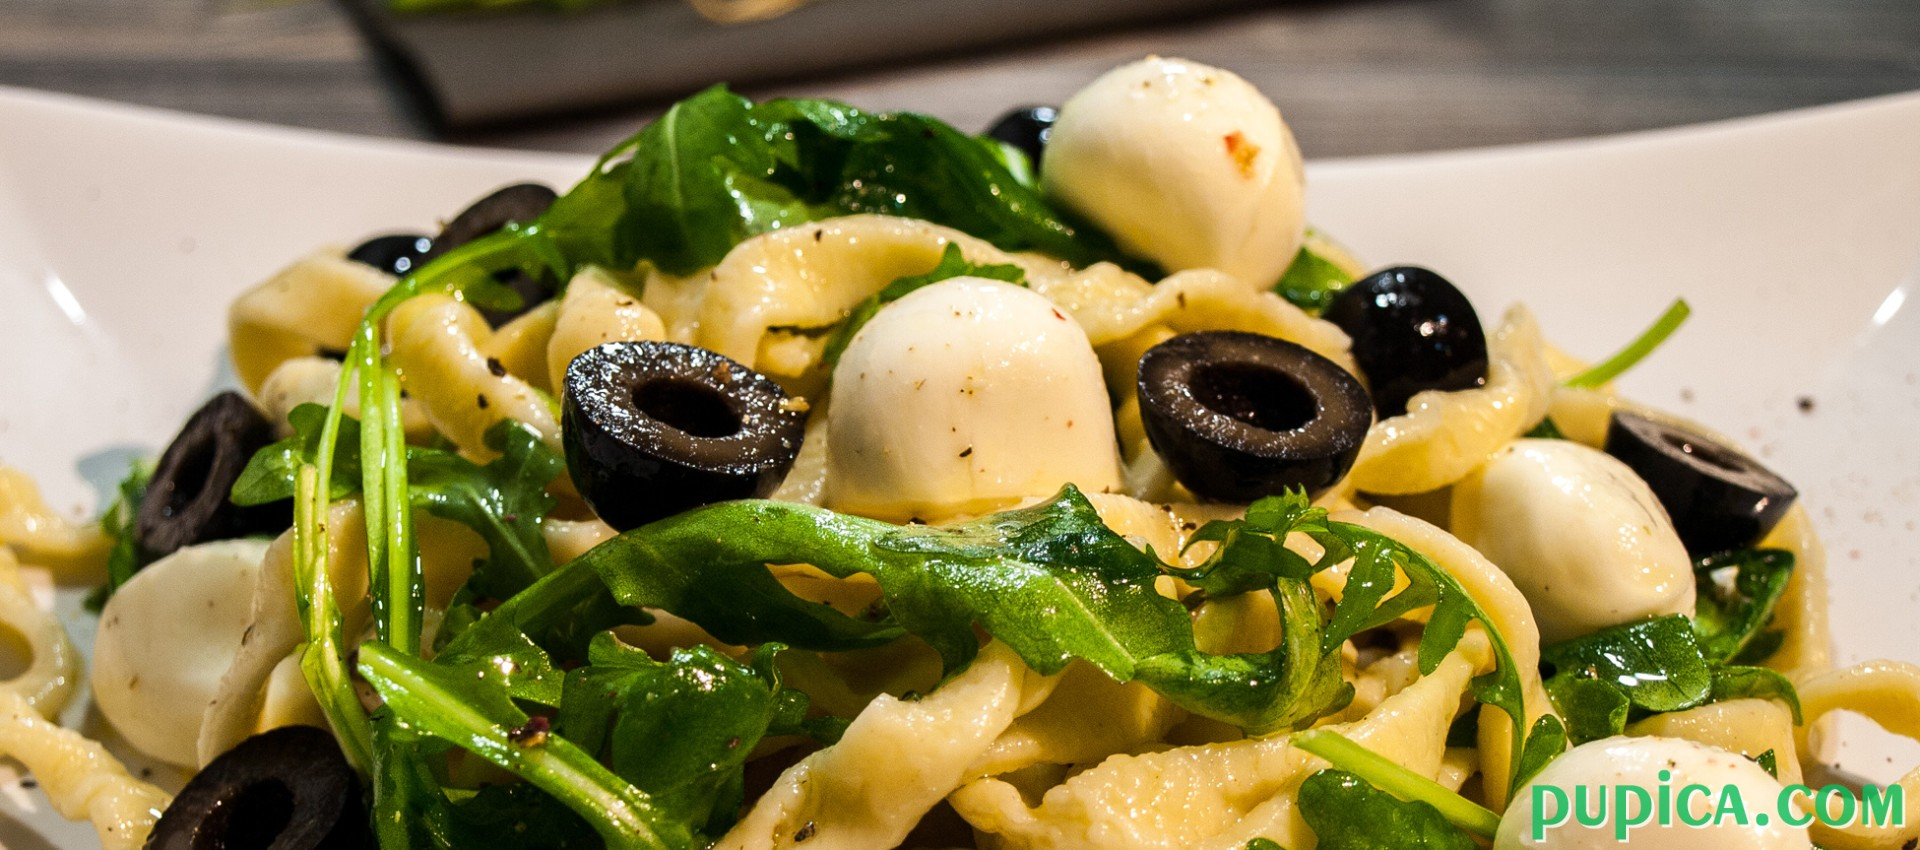 Pasta with Olives, Mozzarella and Arugula